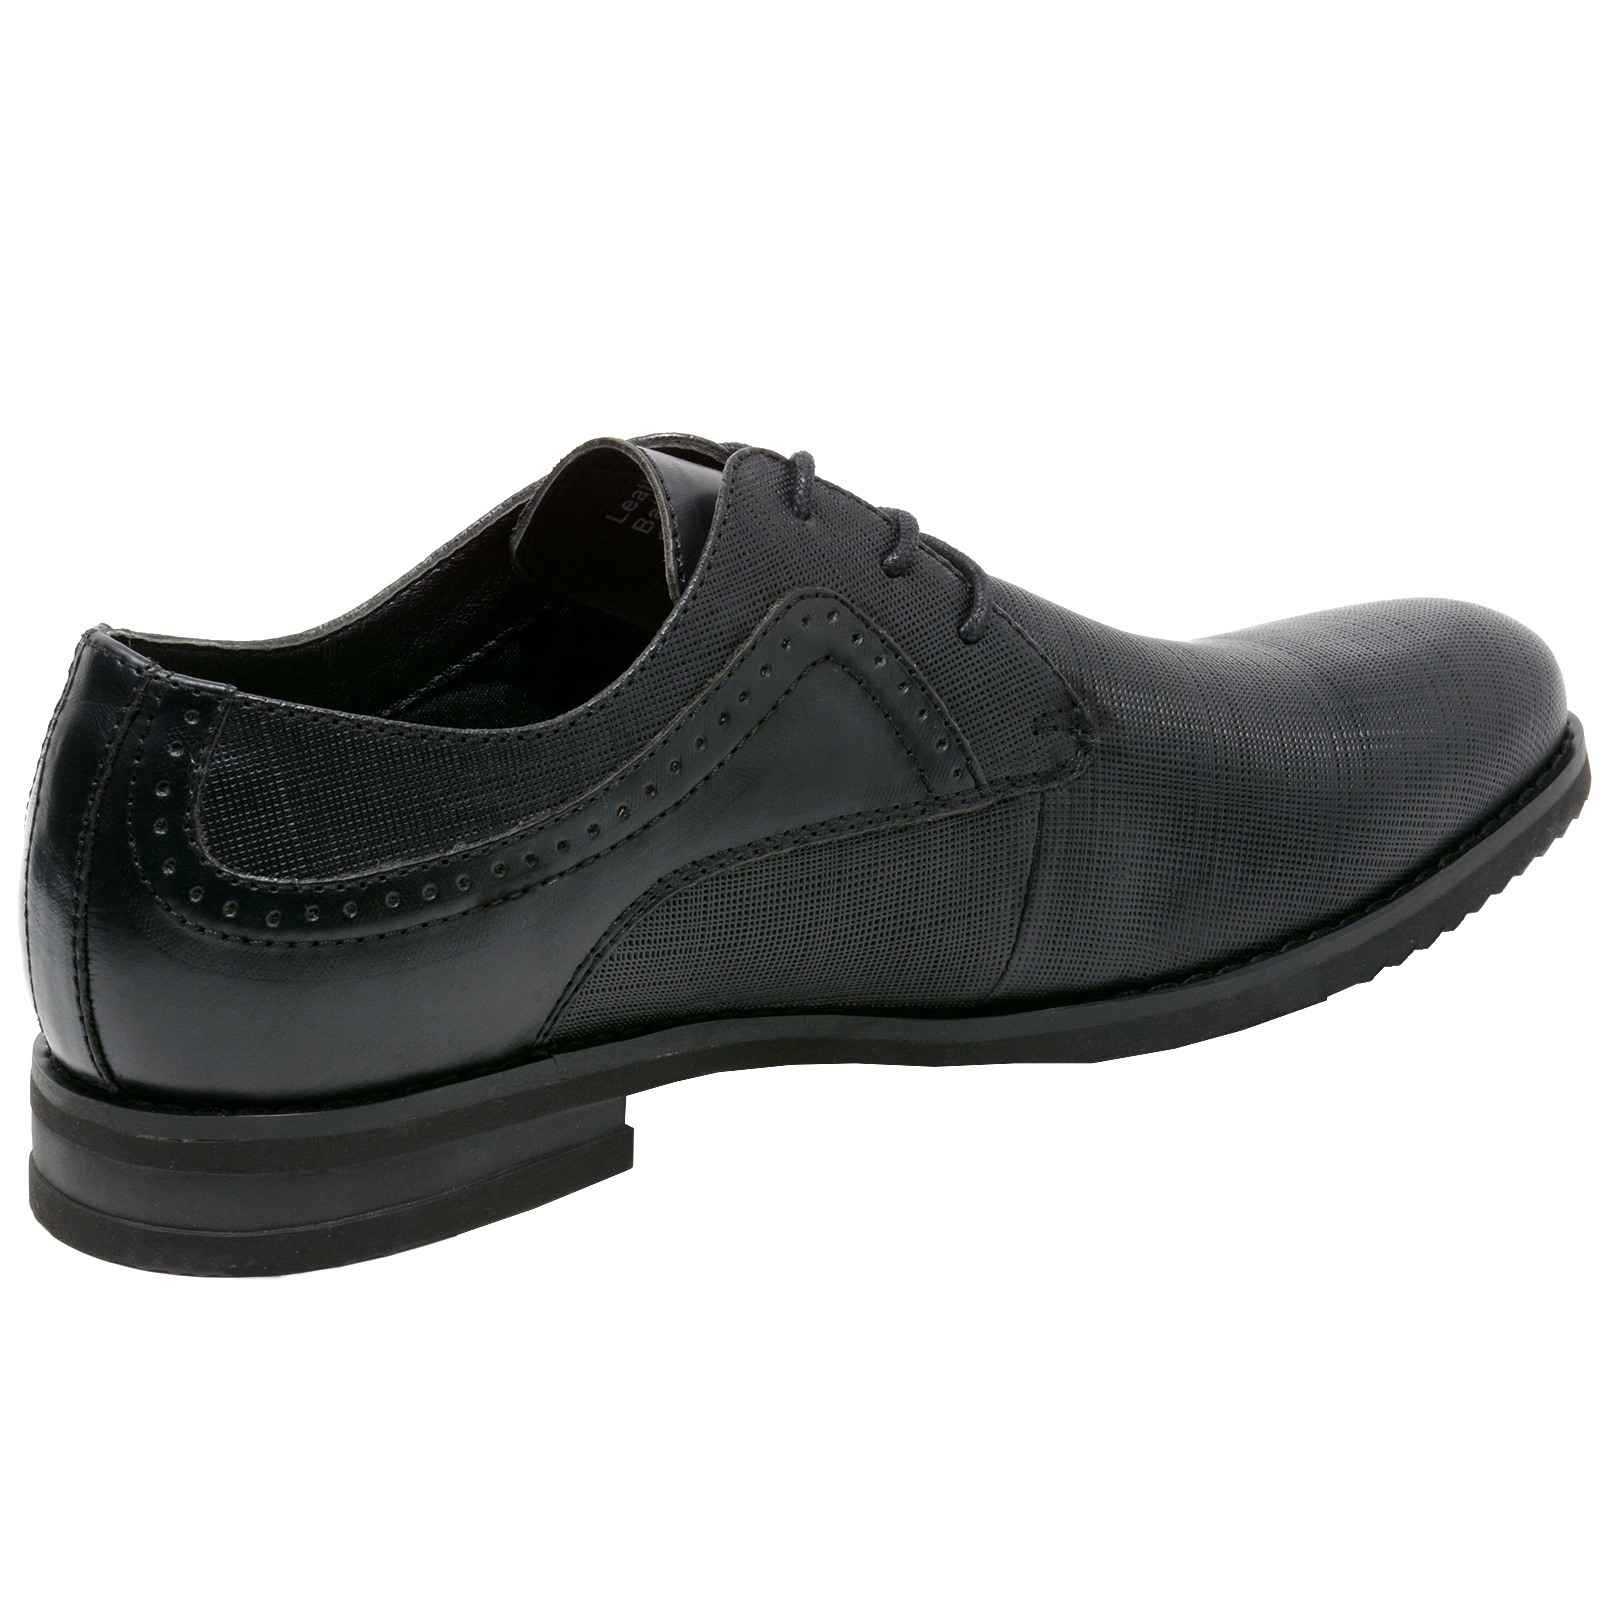 Double-Diamond-by-Alpine-Swiss-Mens-Saffiano-Leather-Lace-Up-Oxford-Dress-Shoes thumbnail 15